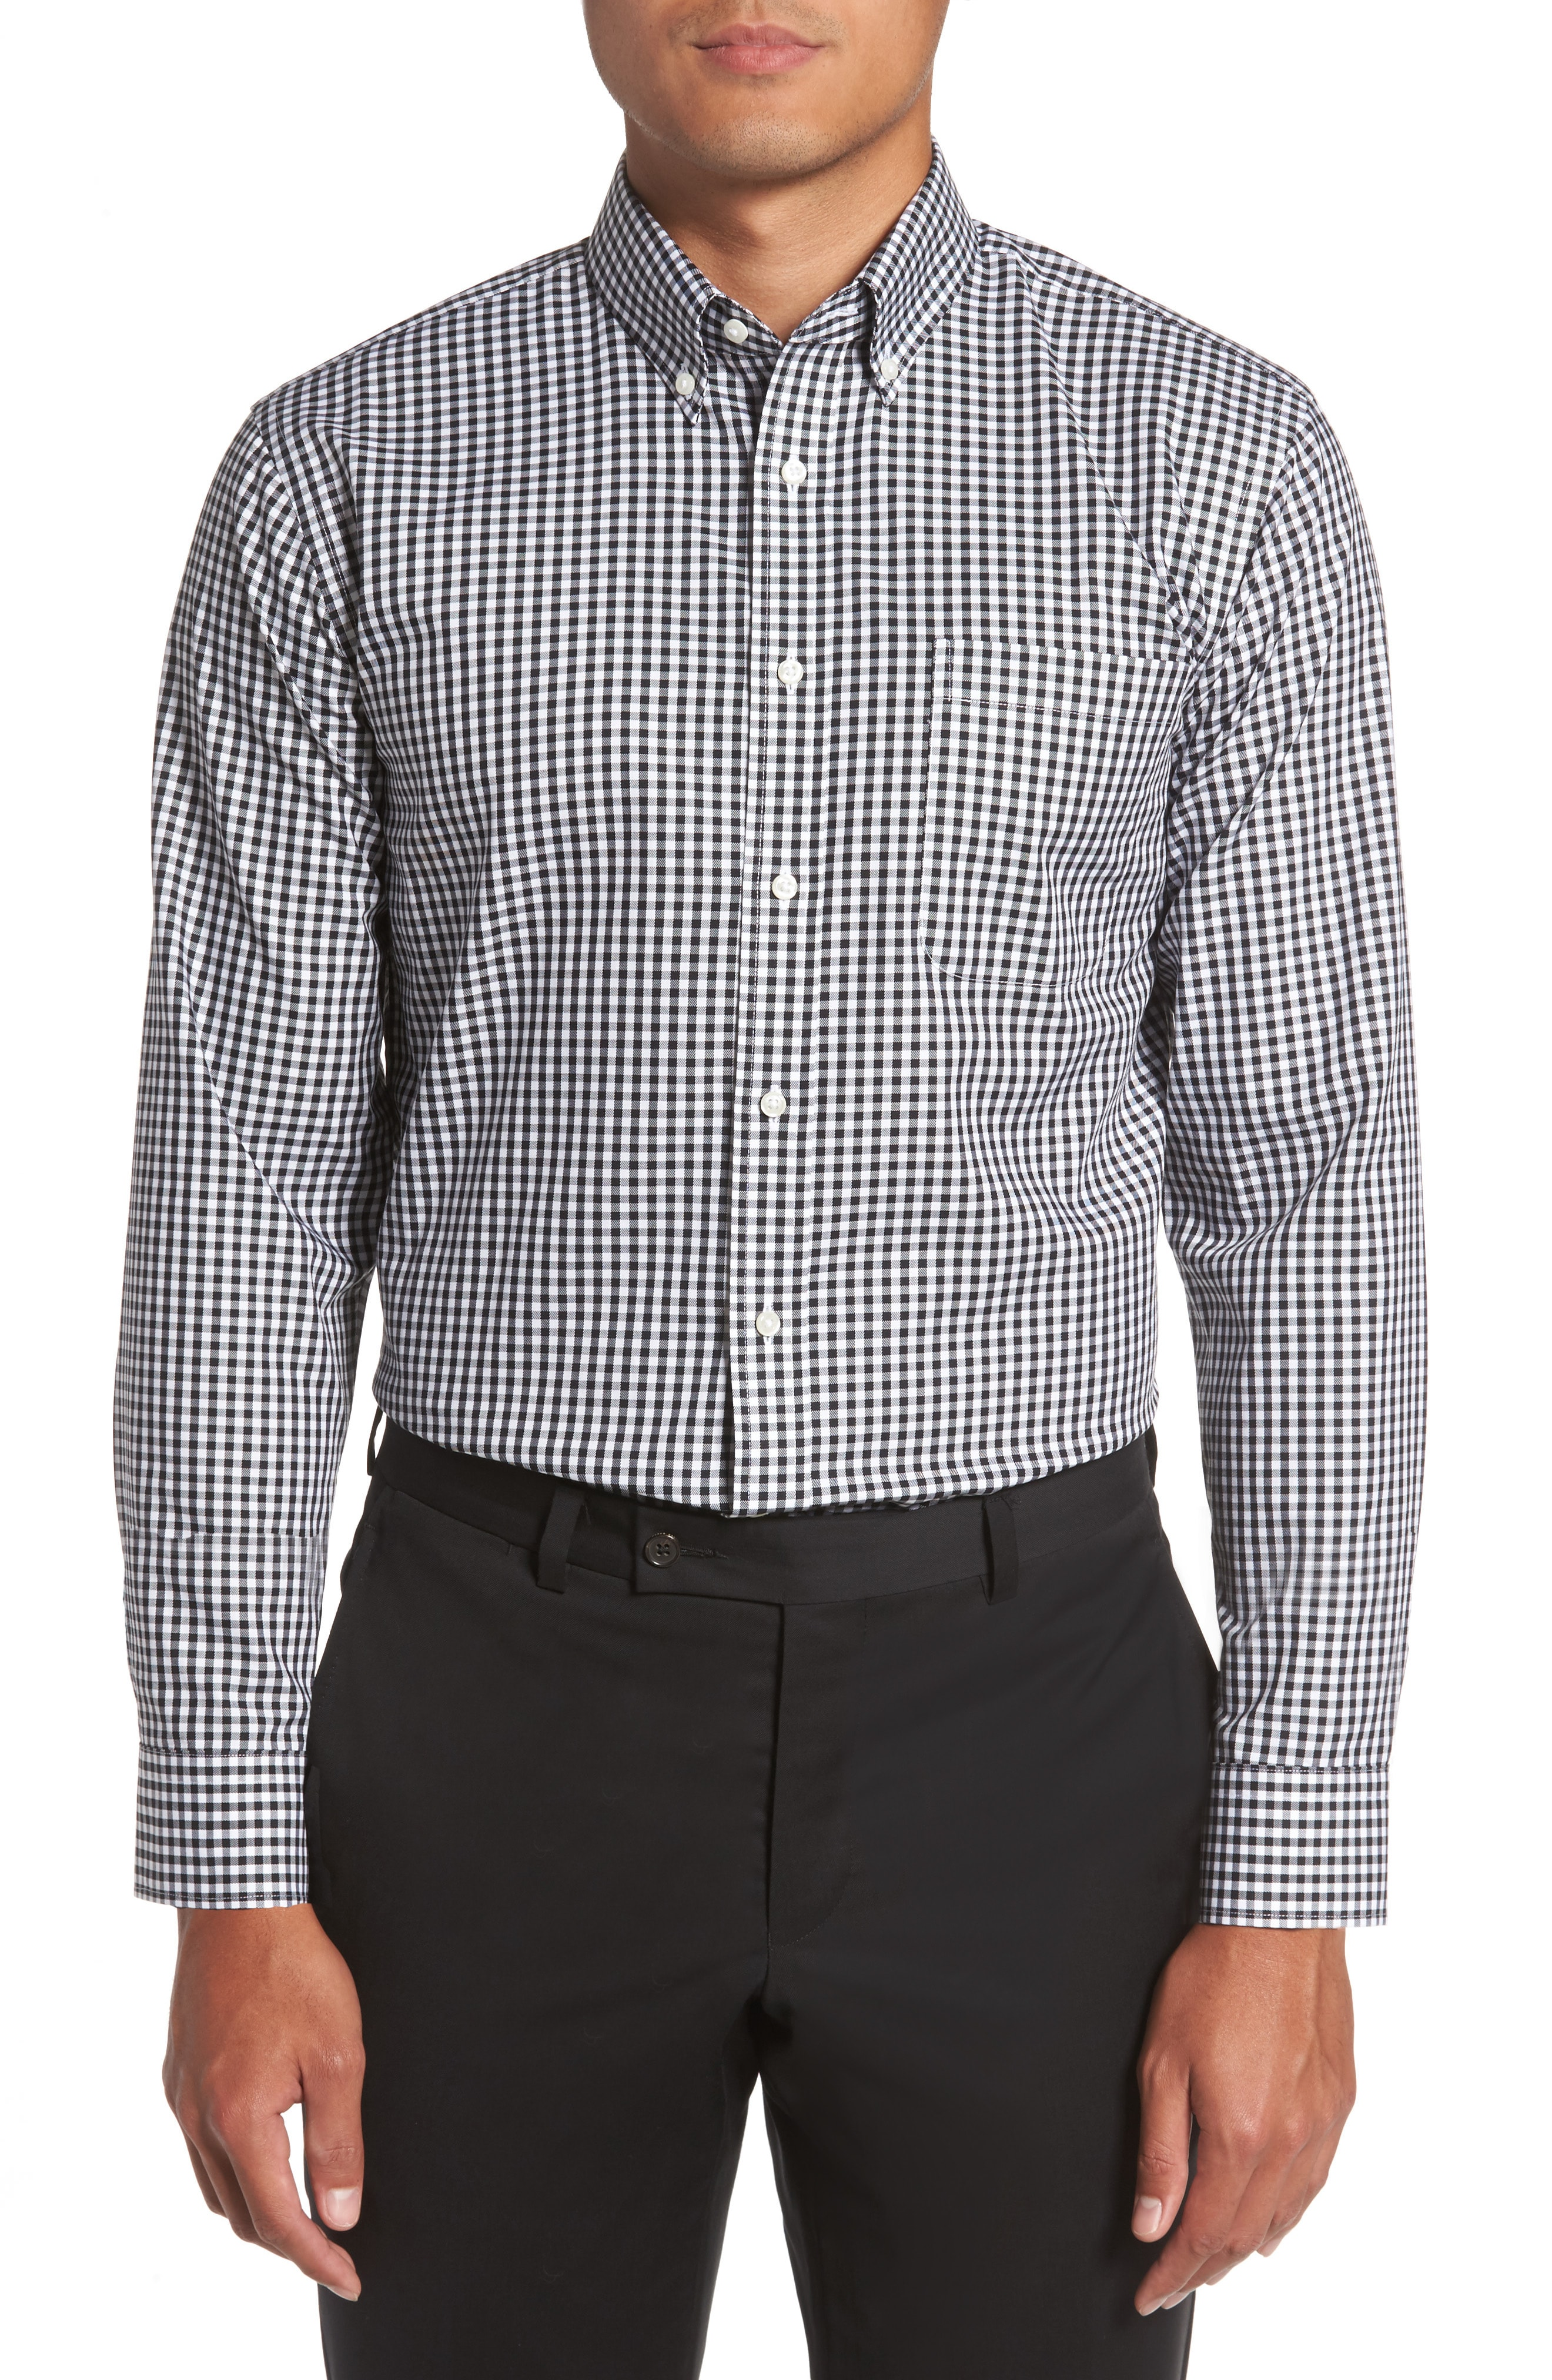 Men's Stretch Shirts | Nordstrom